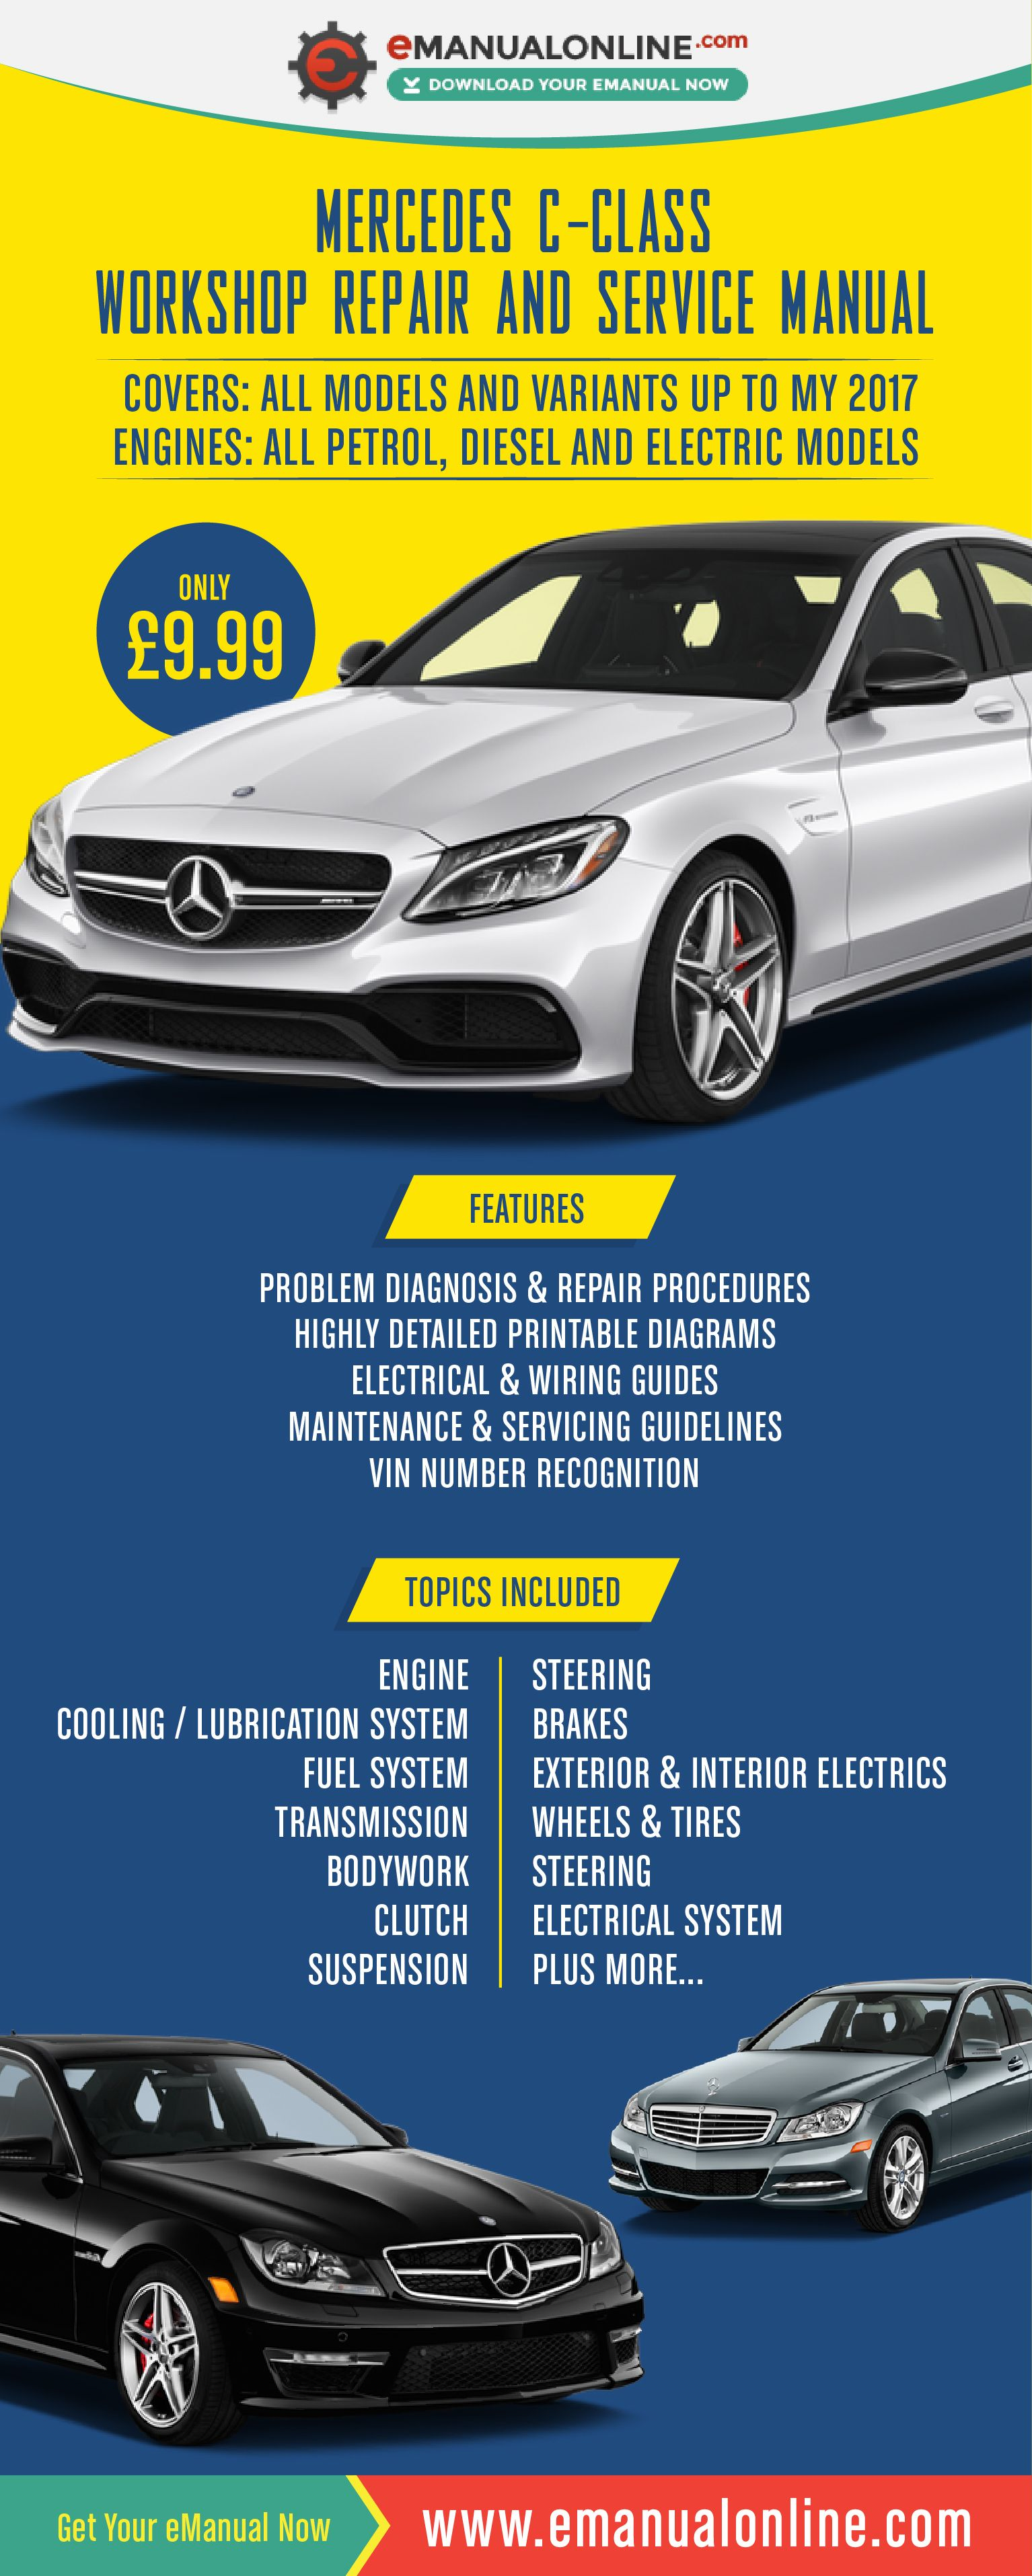 medium resolution of mercedes c class workshop repair and service manual the detailed information contained within this workshop manual is quite simply stu cars bikes